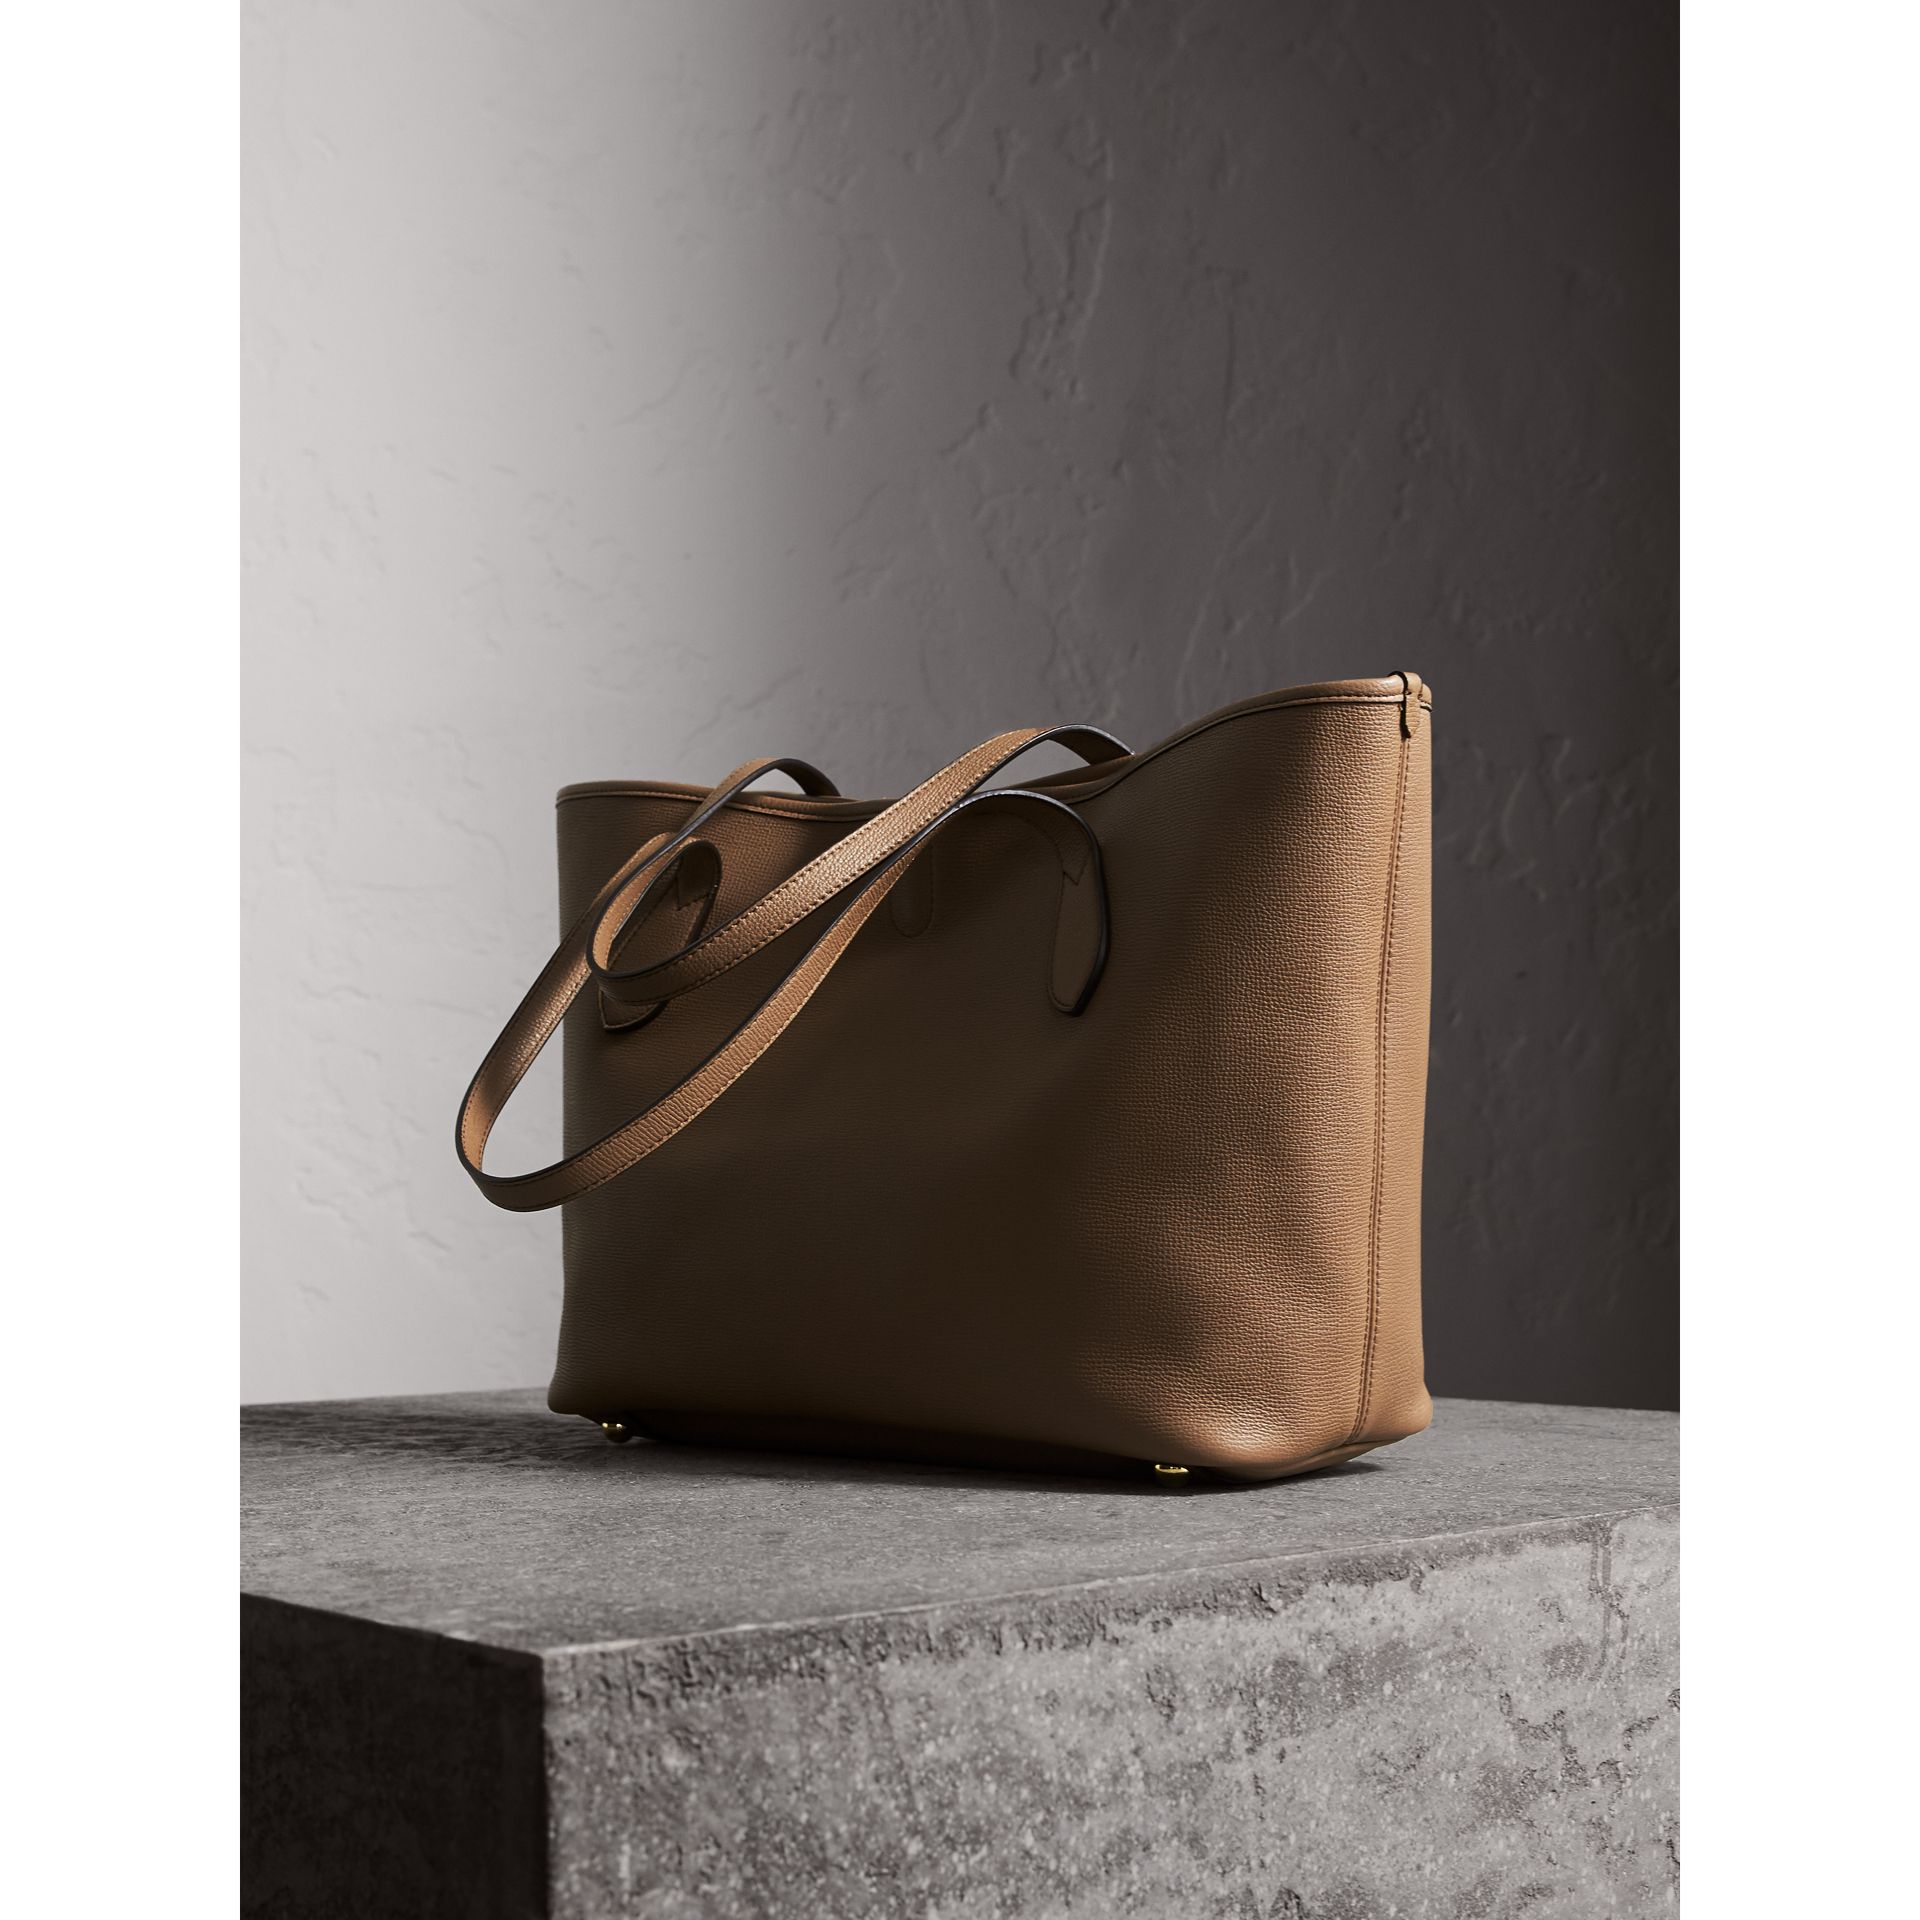 Sac tote medium en cuir grainé (Sable Foncé) - photo de la galerie 4